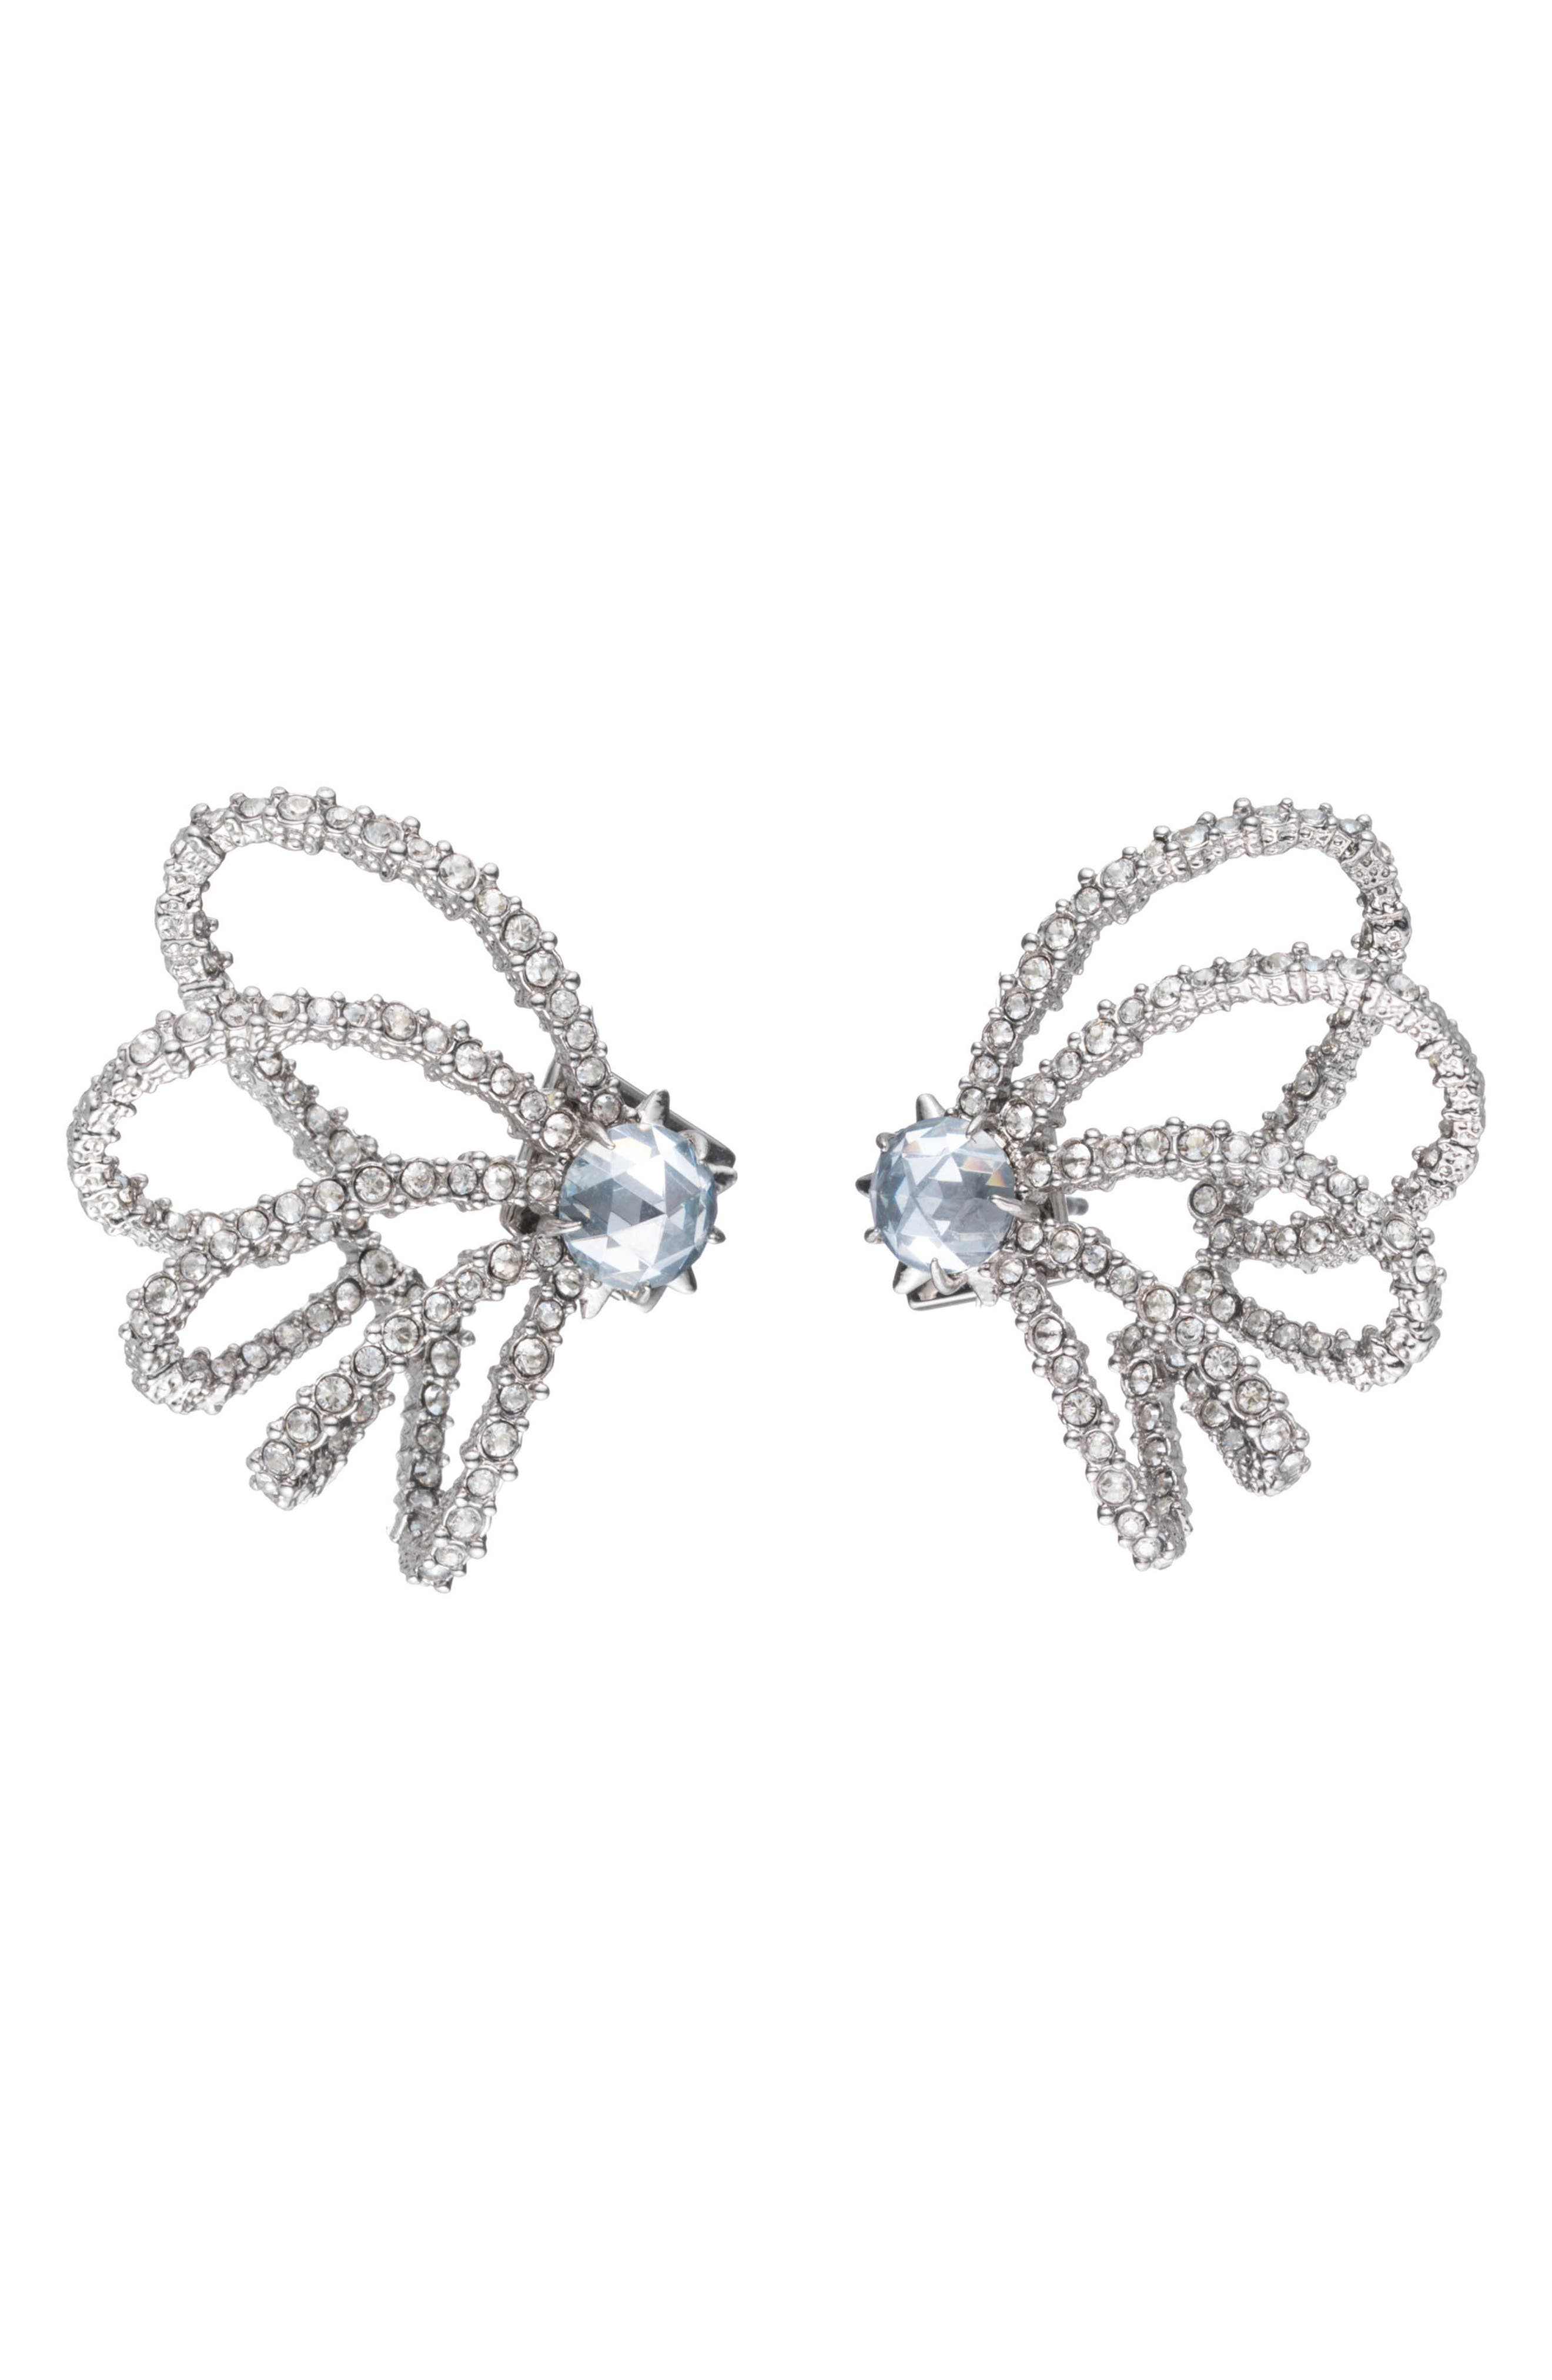 ALEXIS BITTAR Silvertone Crystal Lace Orbiting Post Earrings in Gold/ Crystal